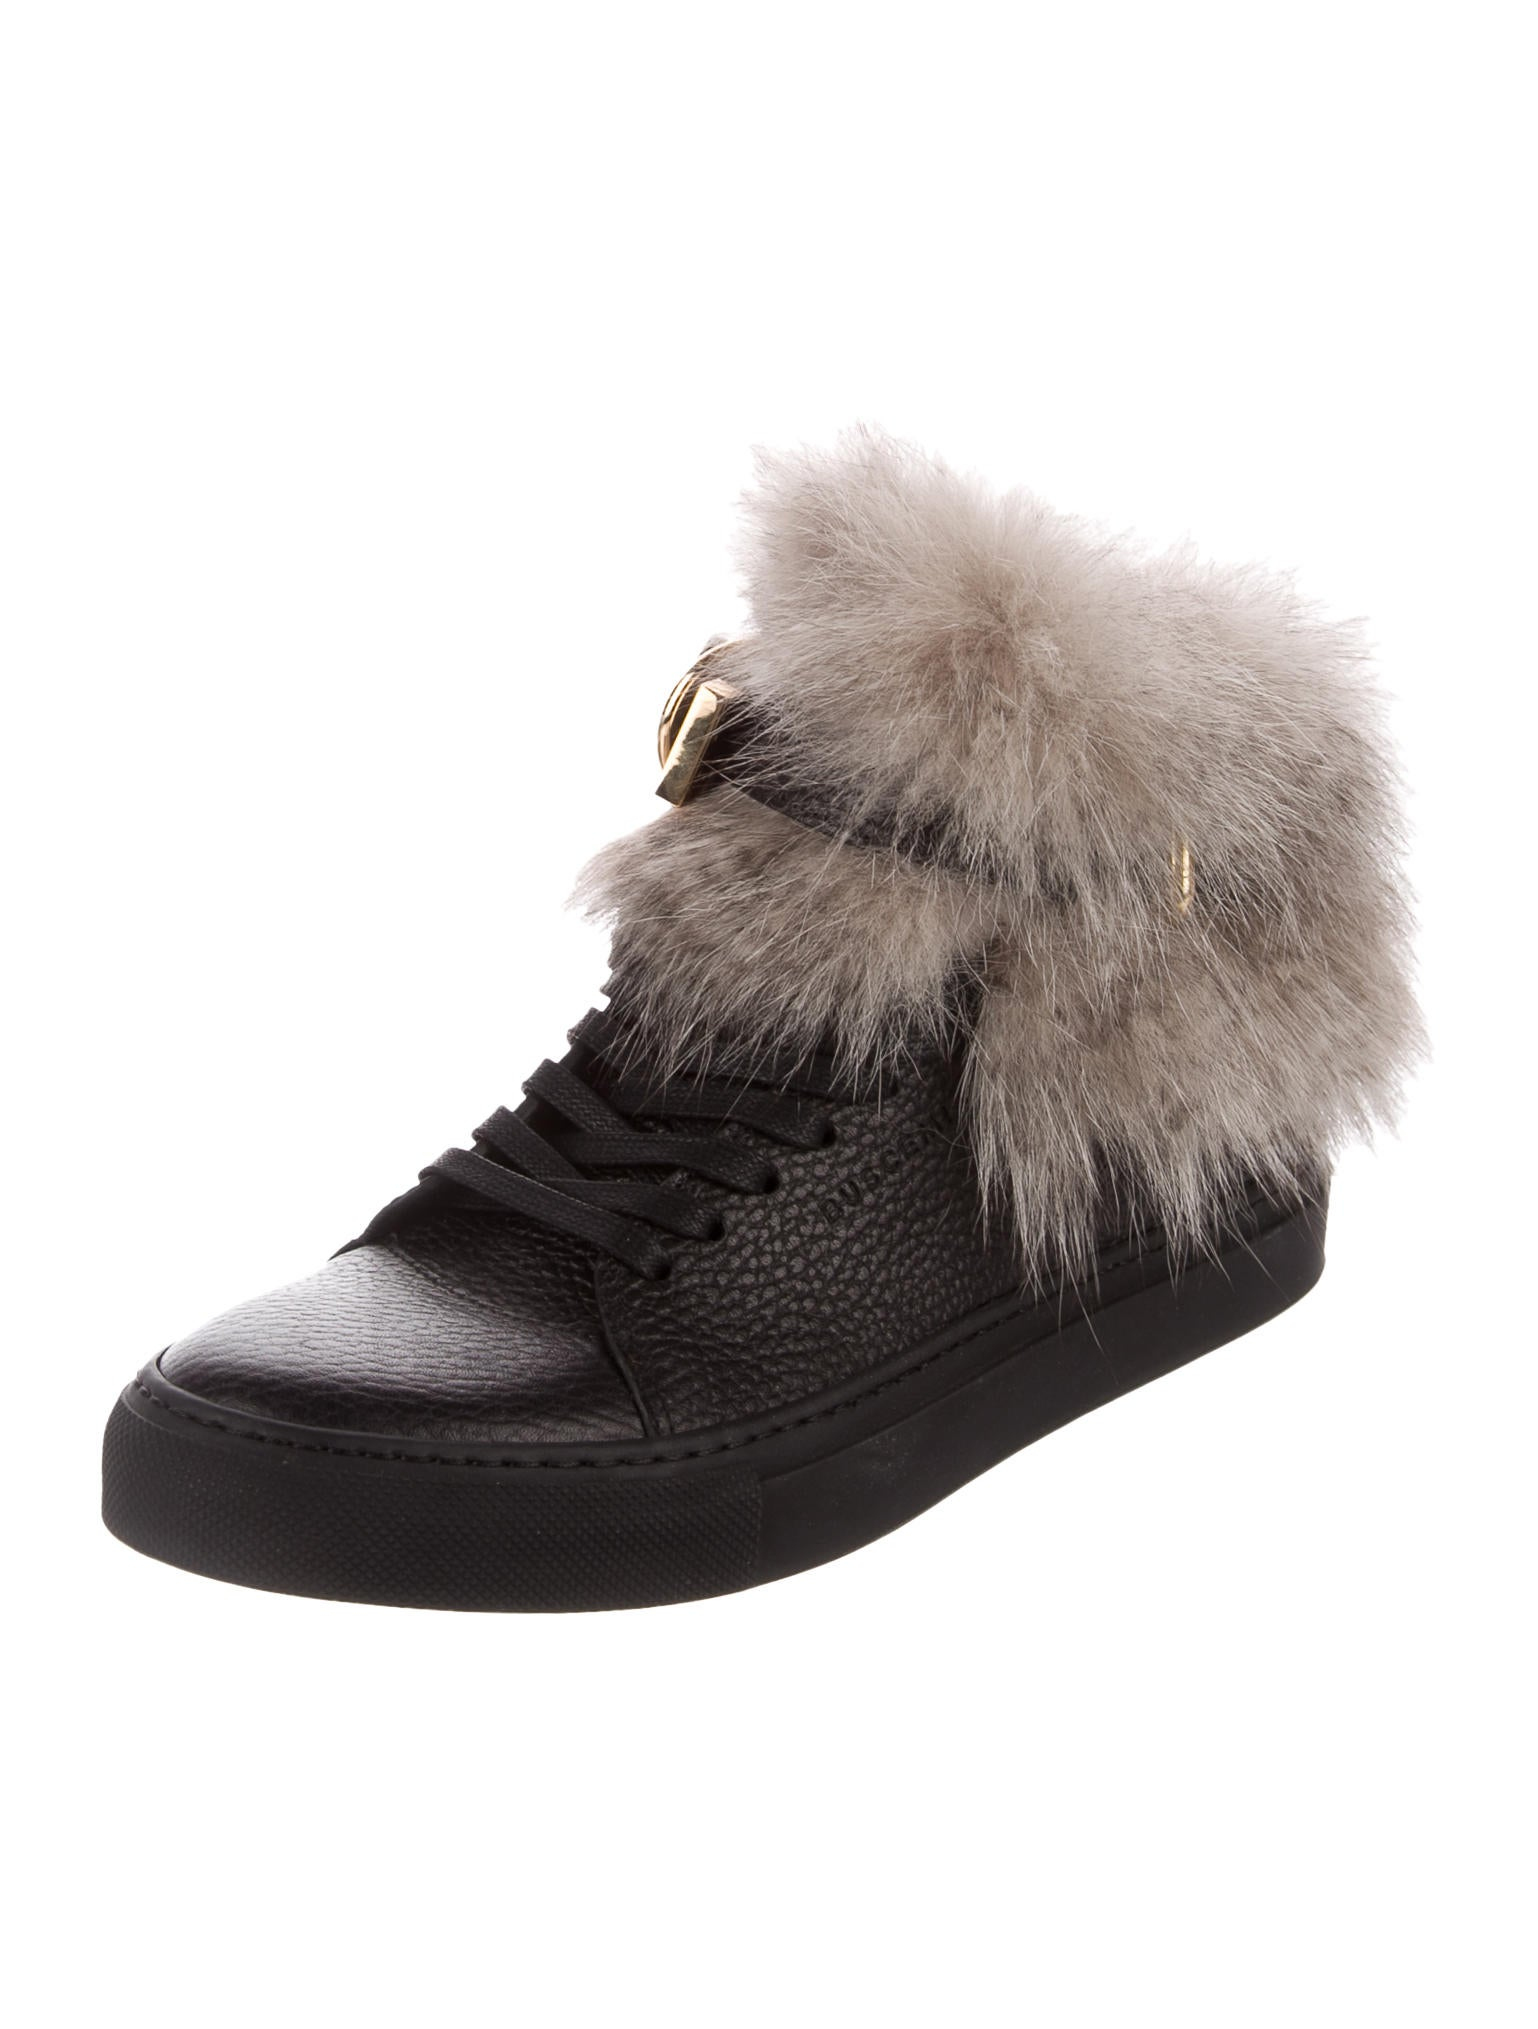 buy cheap latest clearance big discount Buscemi Fur-Trimmed Leather Sneakers cheap fashion Style oPfoO